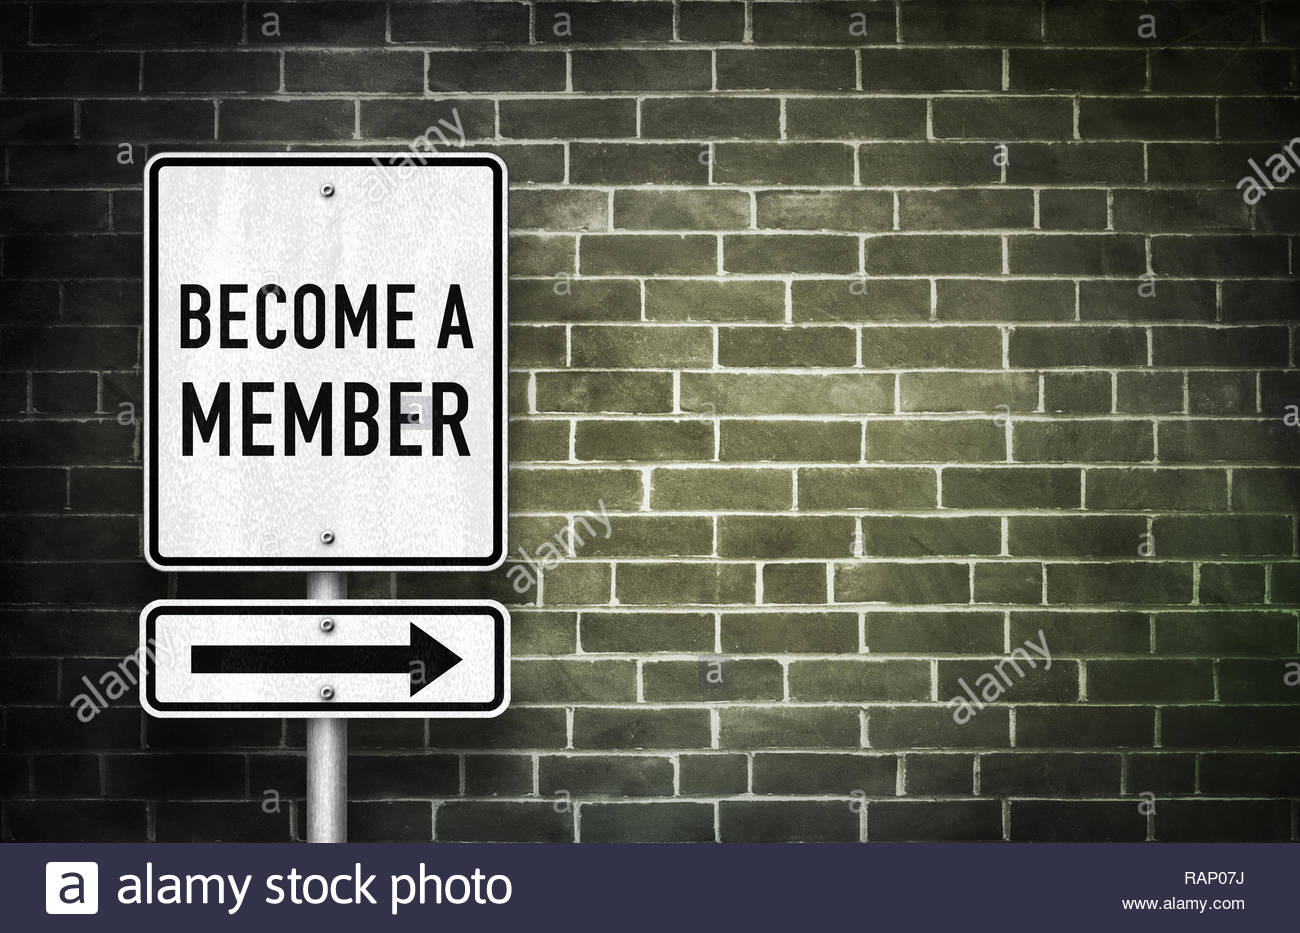 Become a member - Stock Image